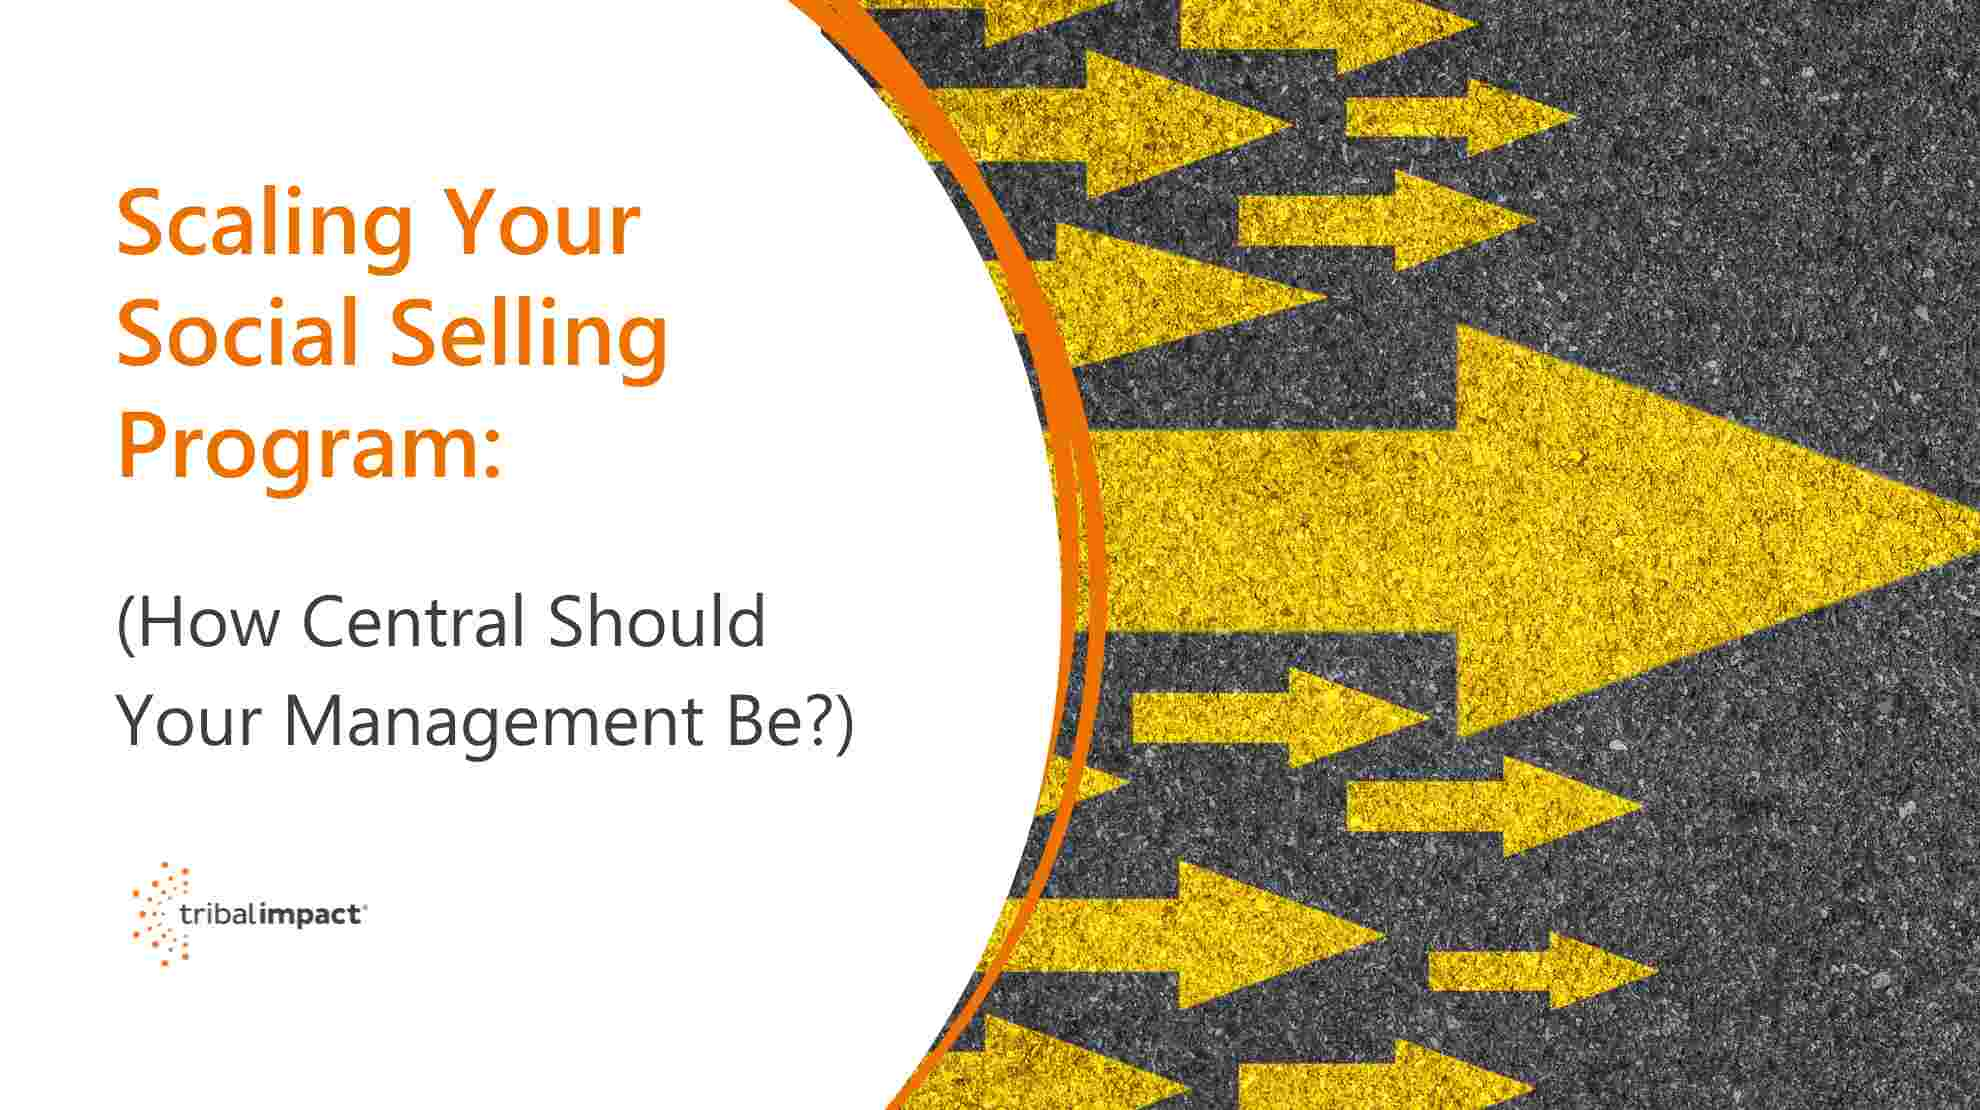 Scaling Your Social Selling Program How Central Should Your Management Be